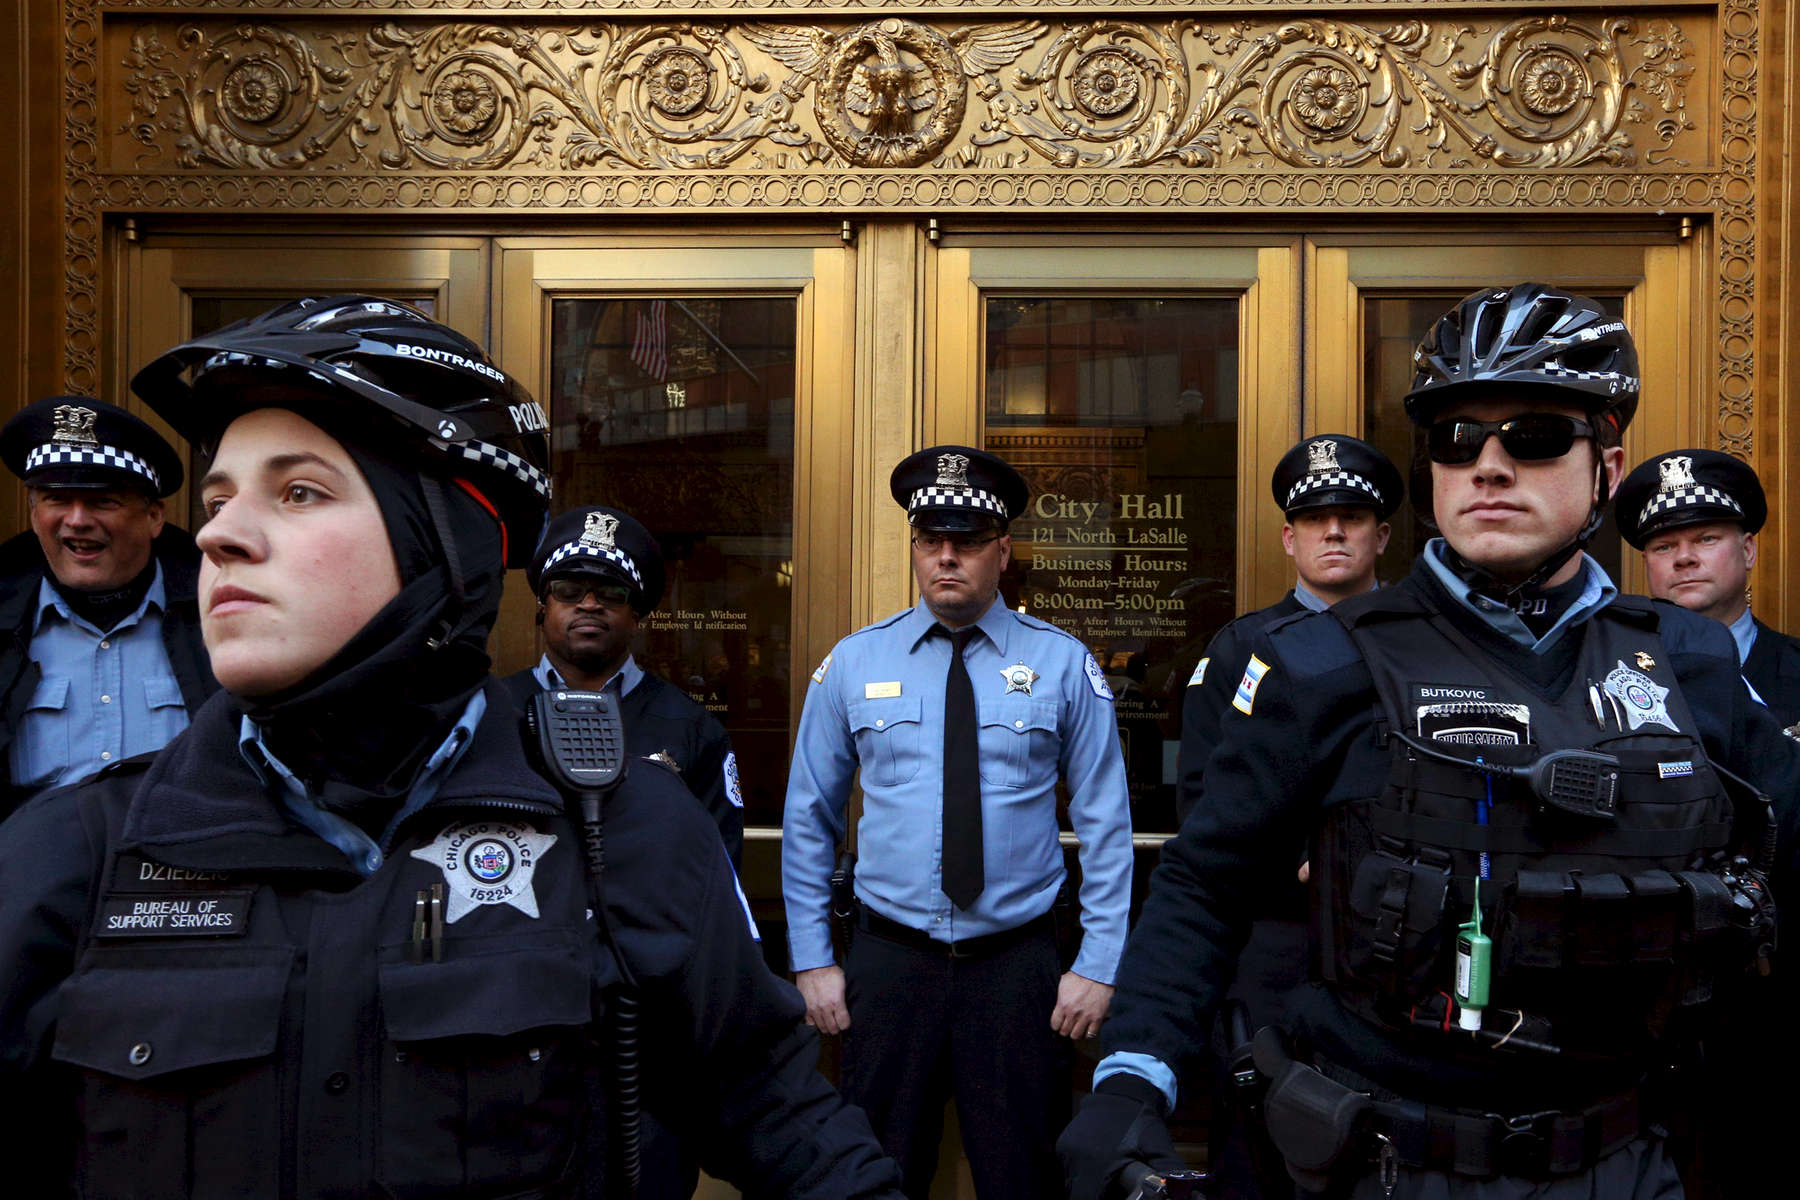 Chicago police officers block an entrance to City Hall as protesters march through the Loop calling for Mayor Rahm Emanuel to step down in response to the shooting death of Laquan McDonald by police in Chicago.